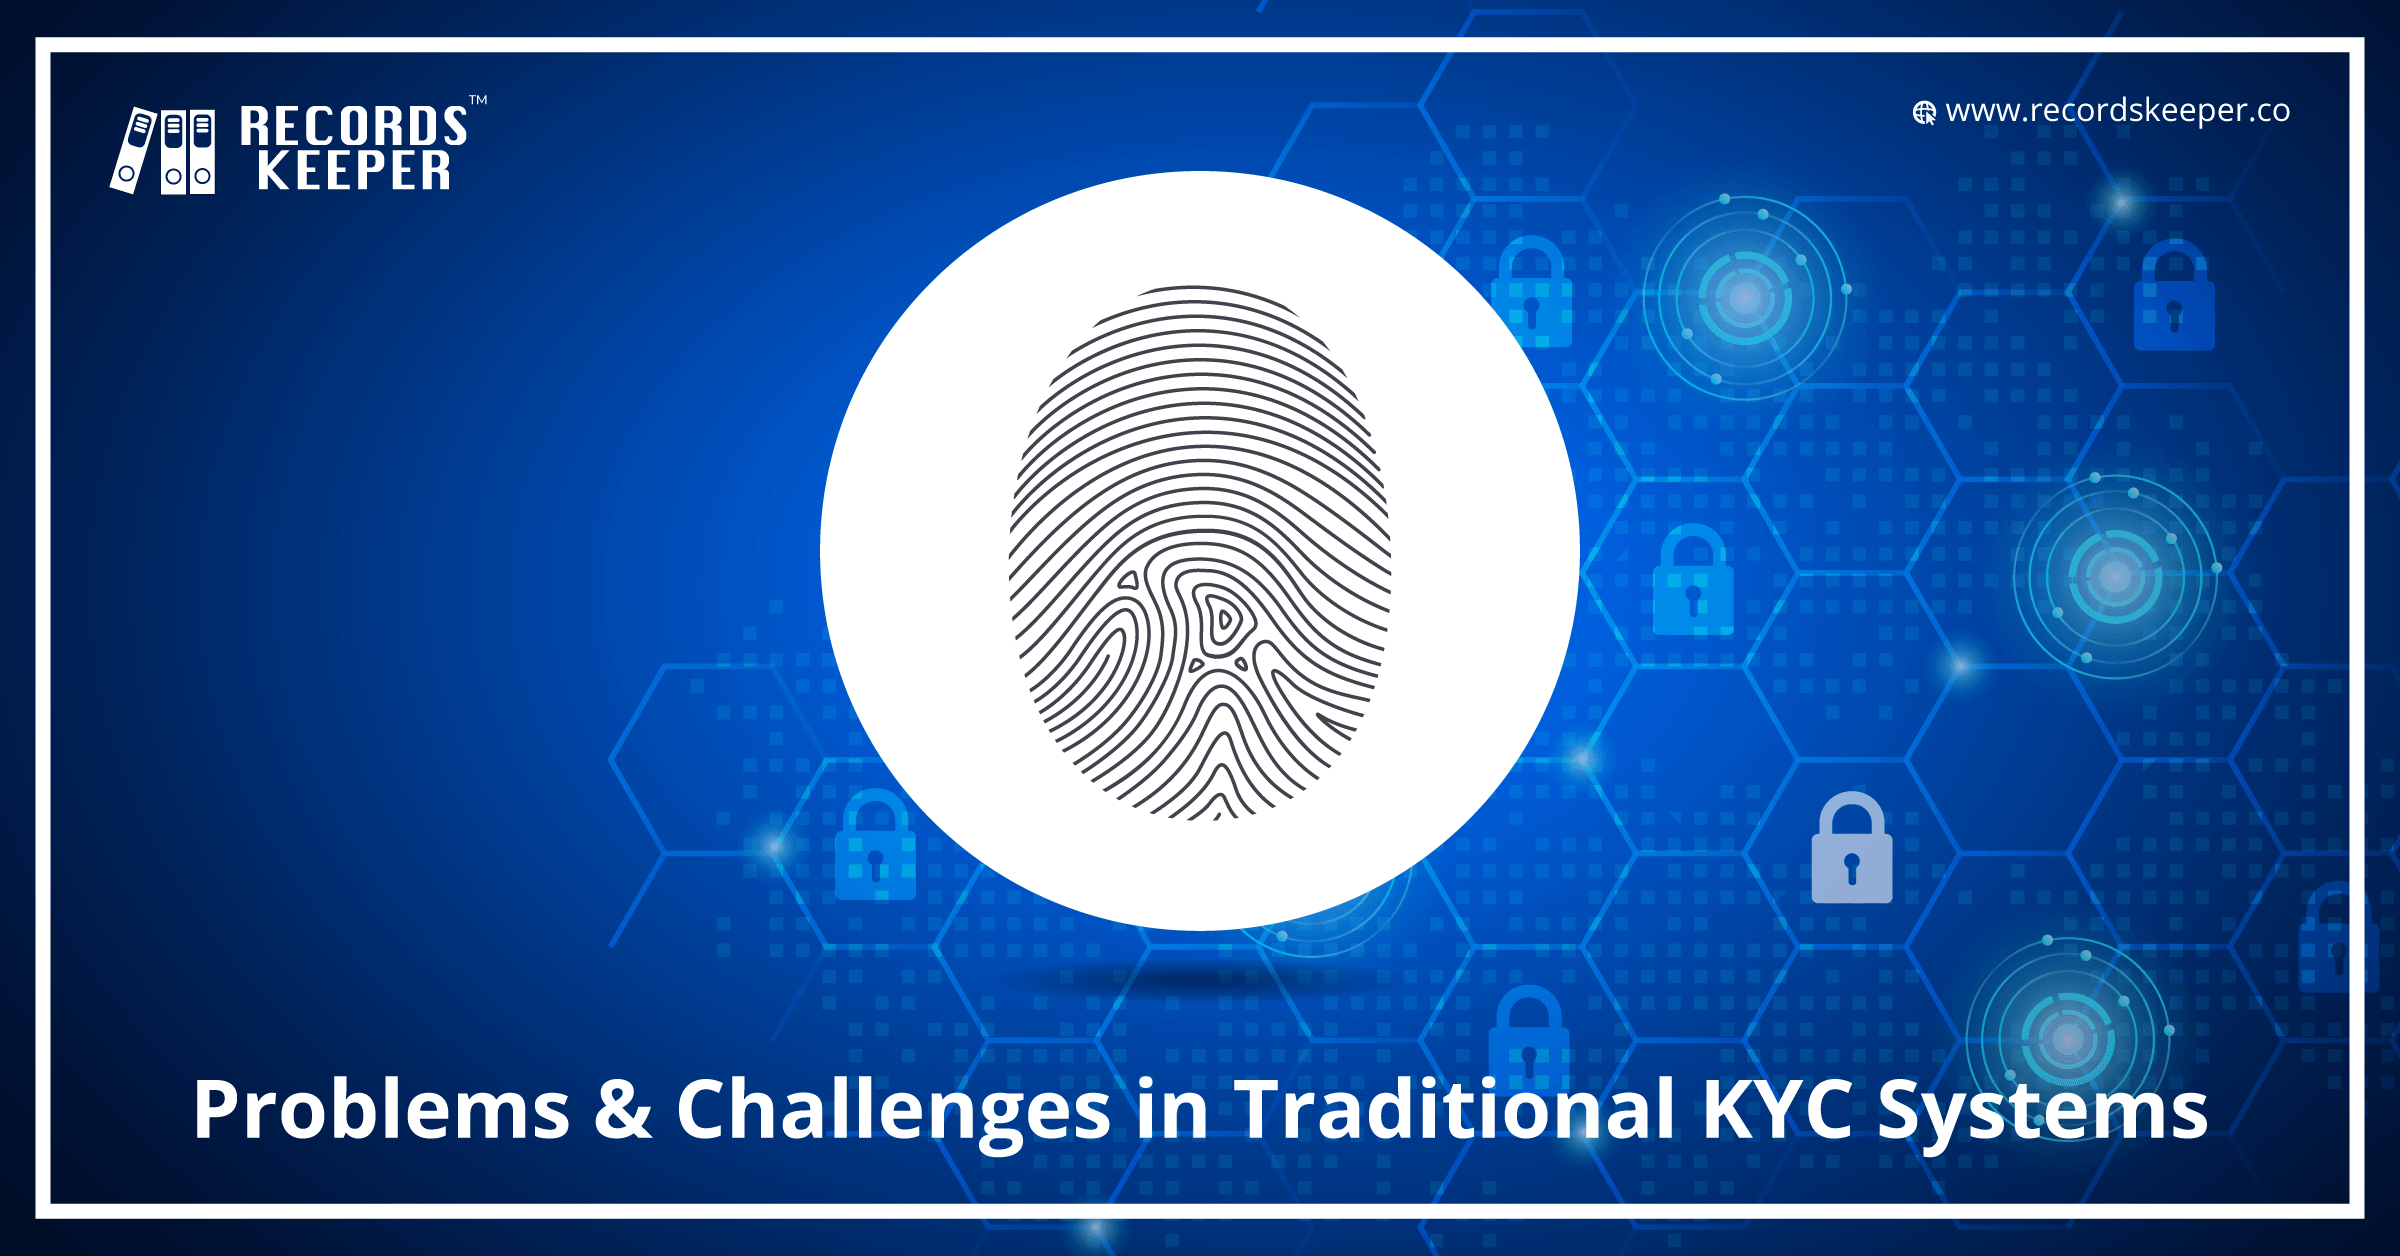 Problems & Challenges in Traditional KYC Systems